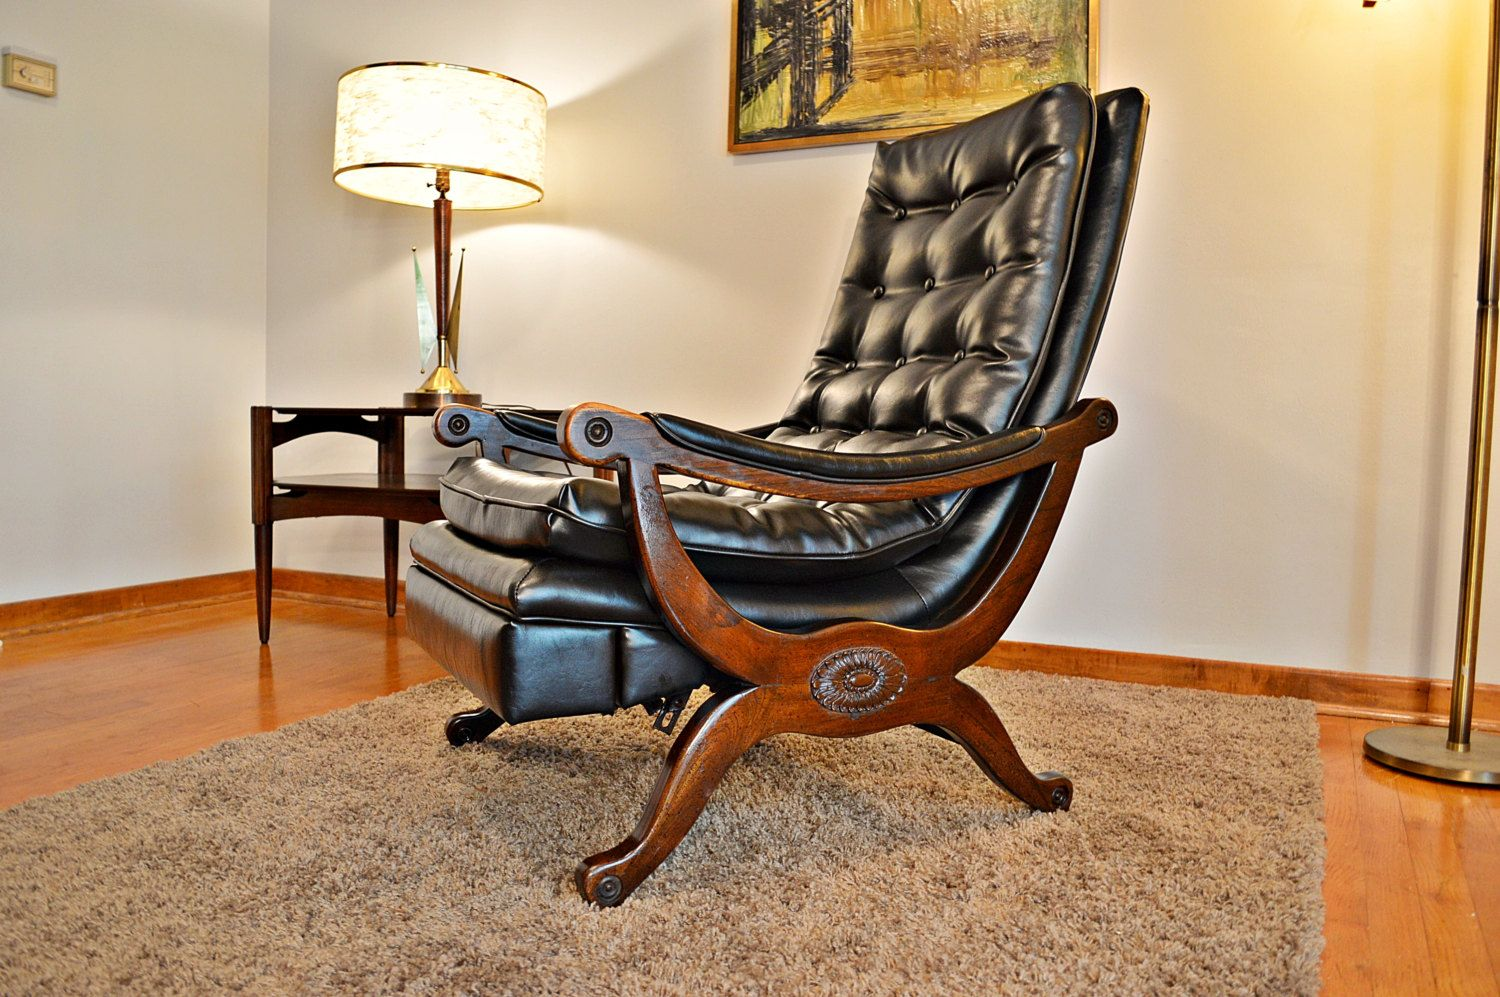 Mid century 1960s black tufted recliner lounge chair by